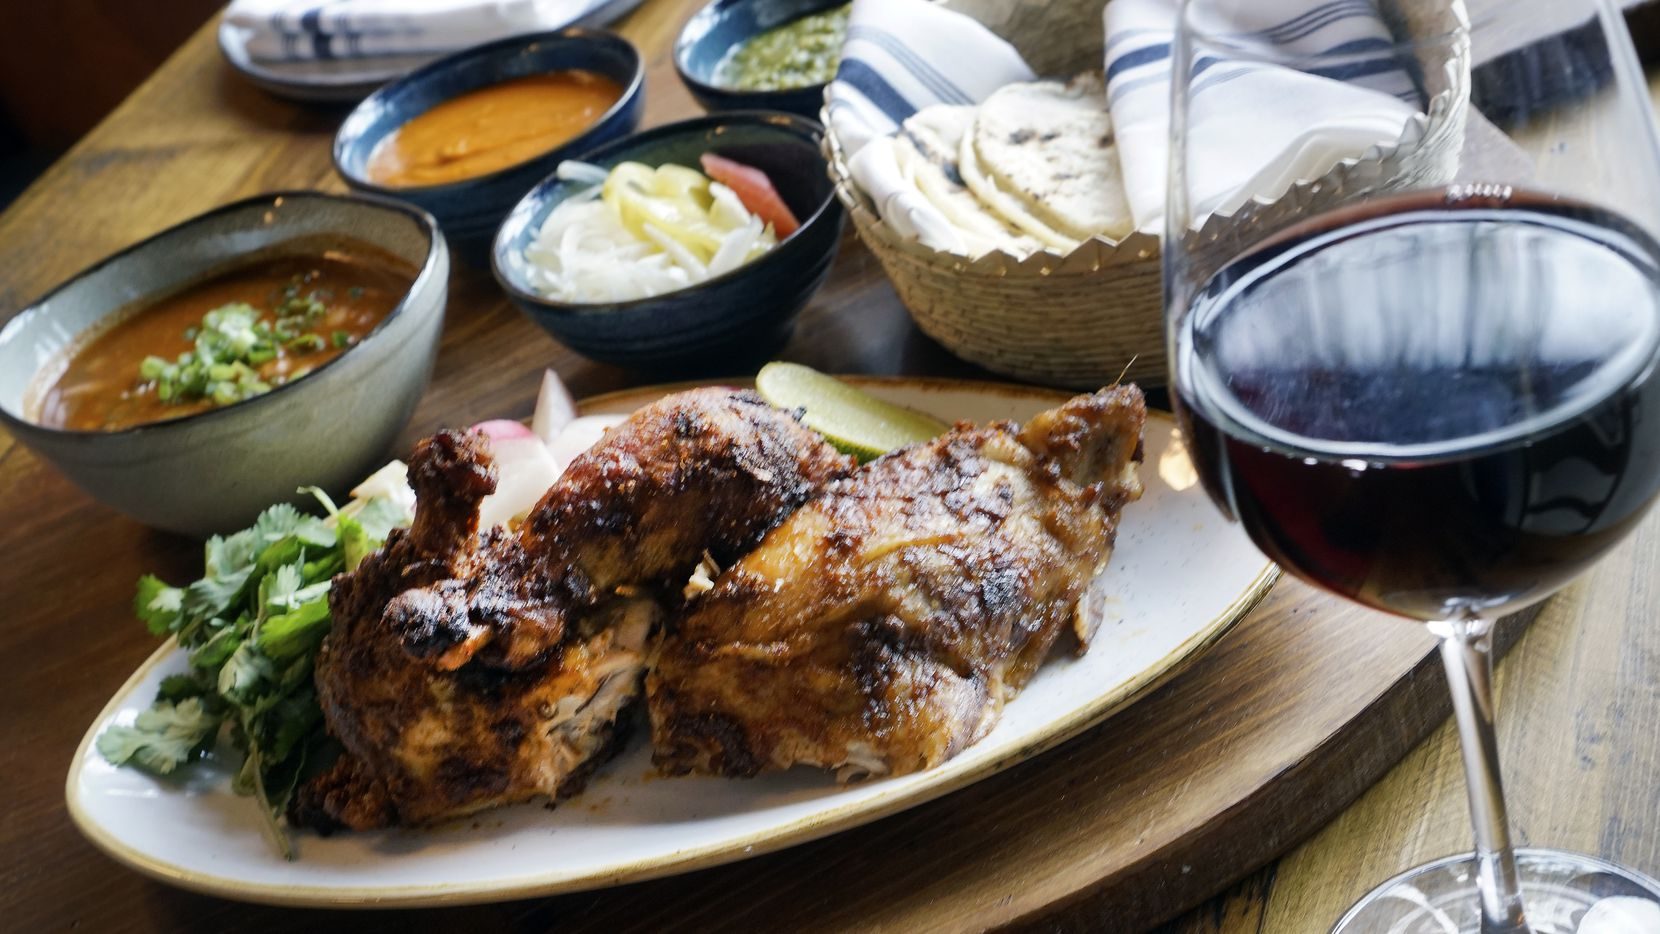 Tinie's in Fort Worth is inspired by the food in Mexico City. Menu items include rotisserie chicken with picante beans.